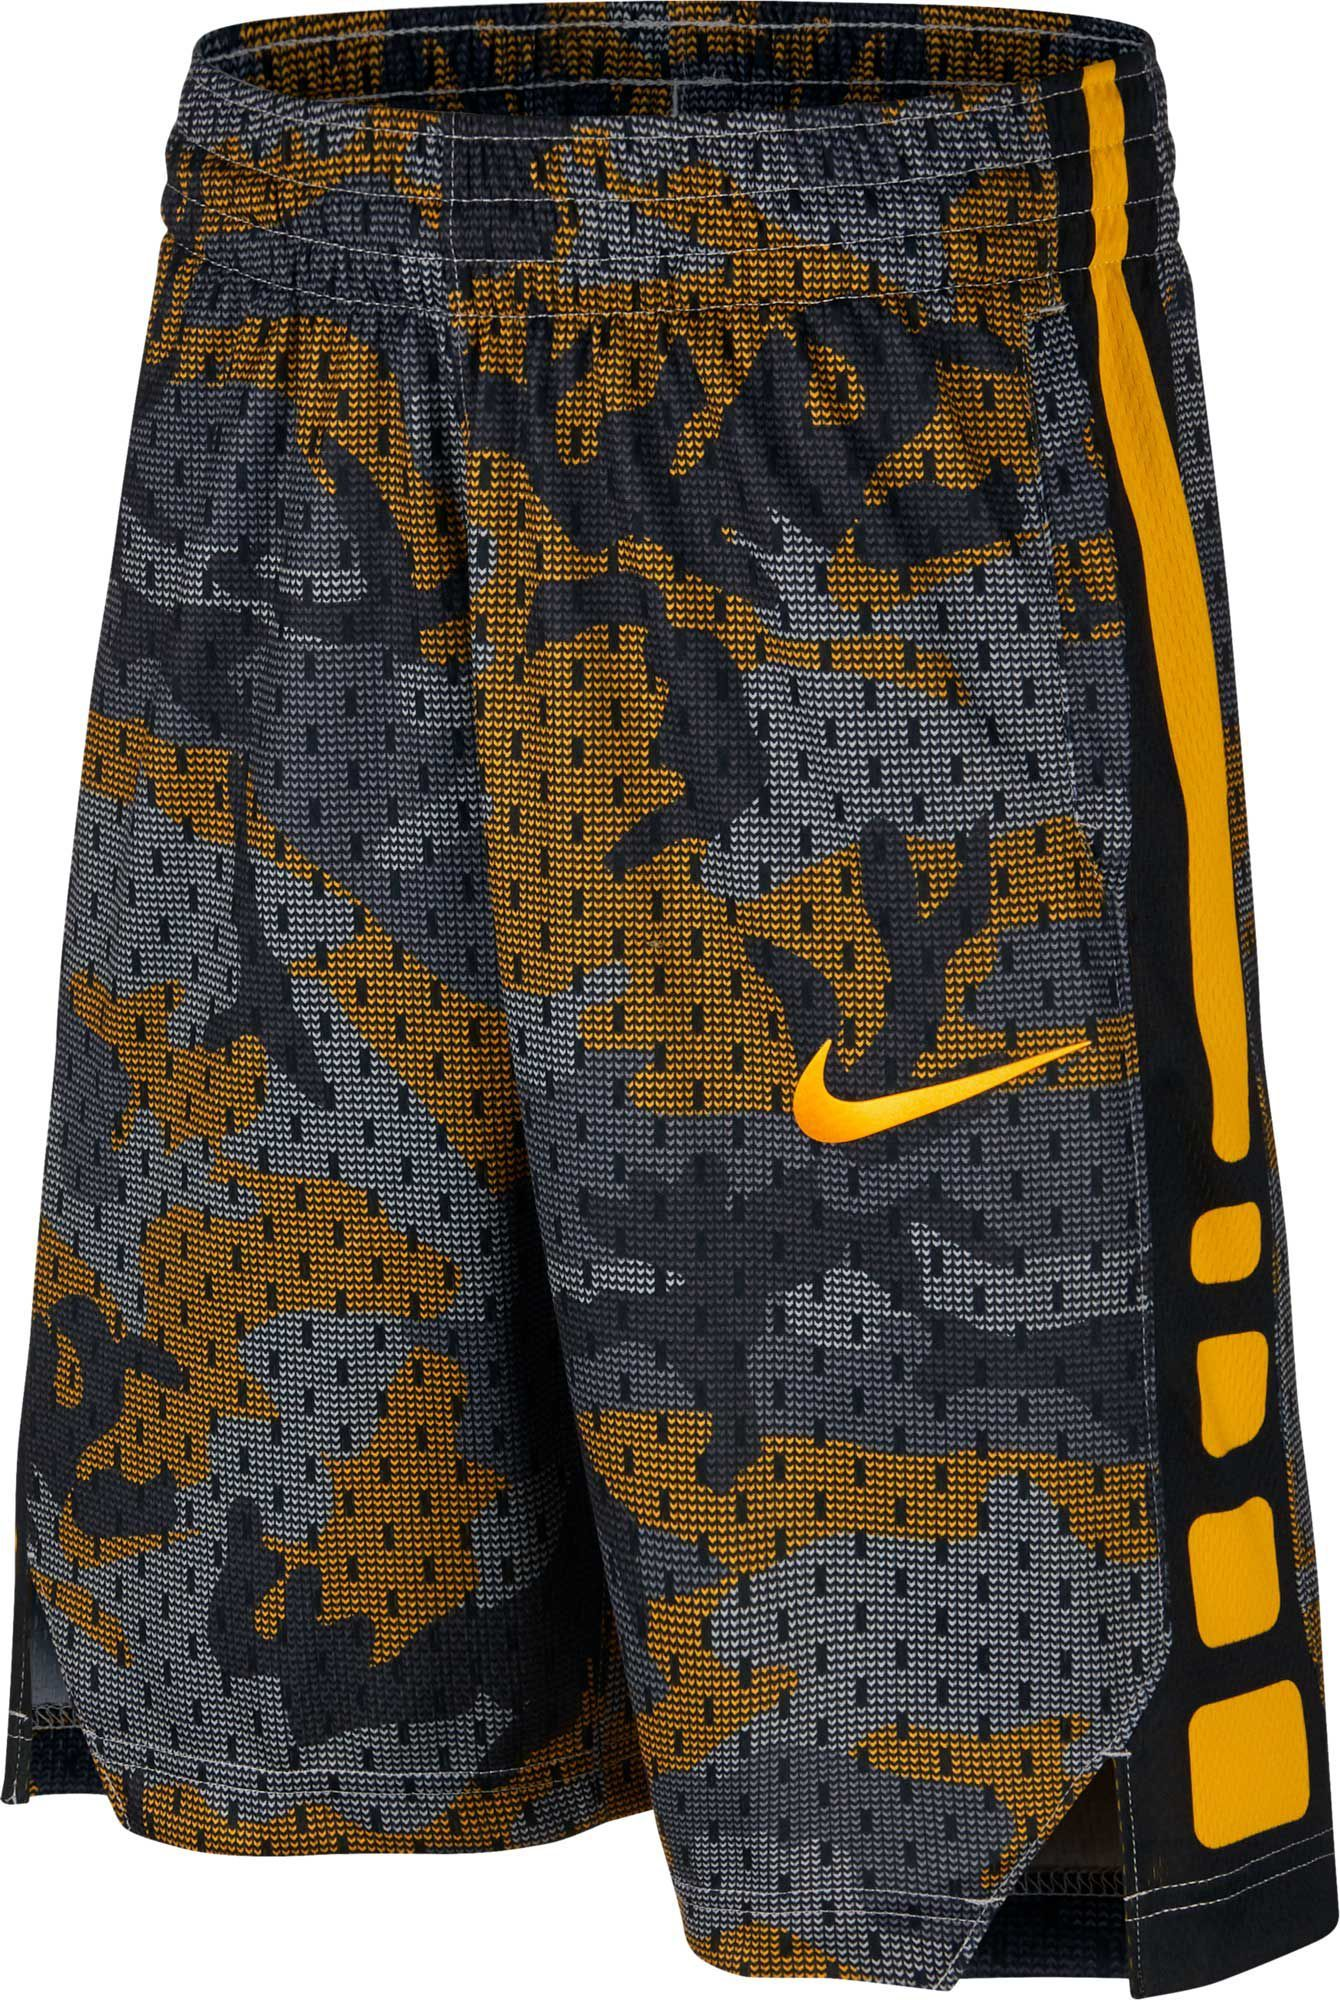 a4ff8e54435 Nike Boys' Dry Elite Camo Print Basketball Shorts, Size: Medium,  Amarillo/Black